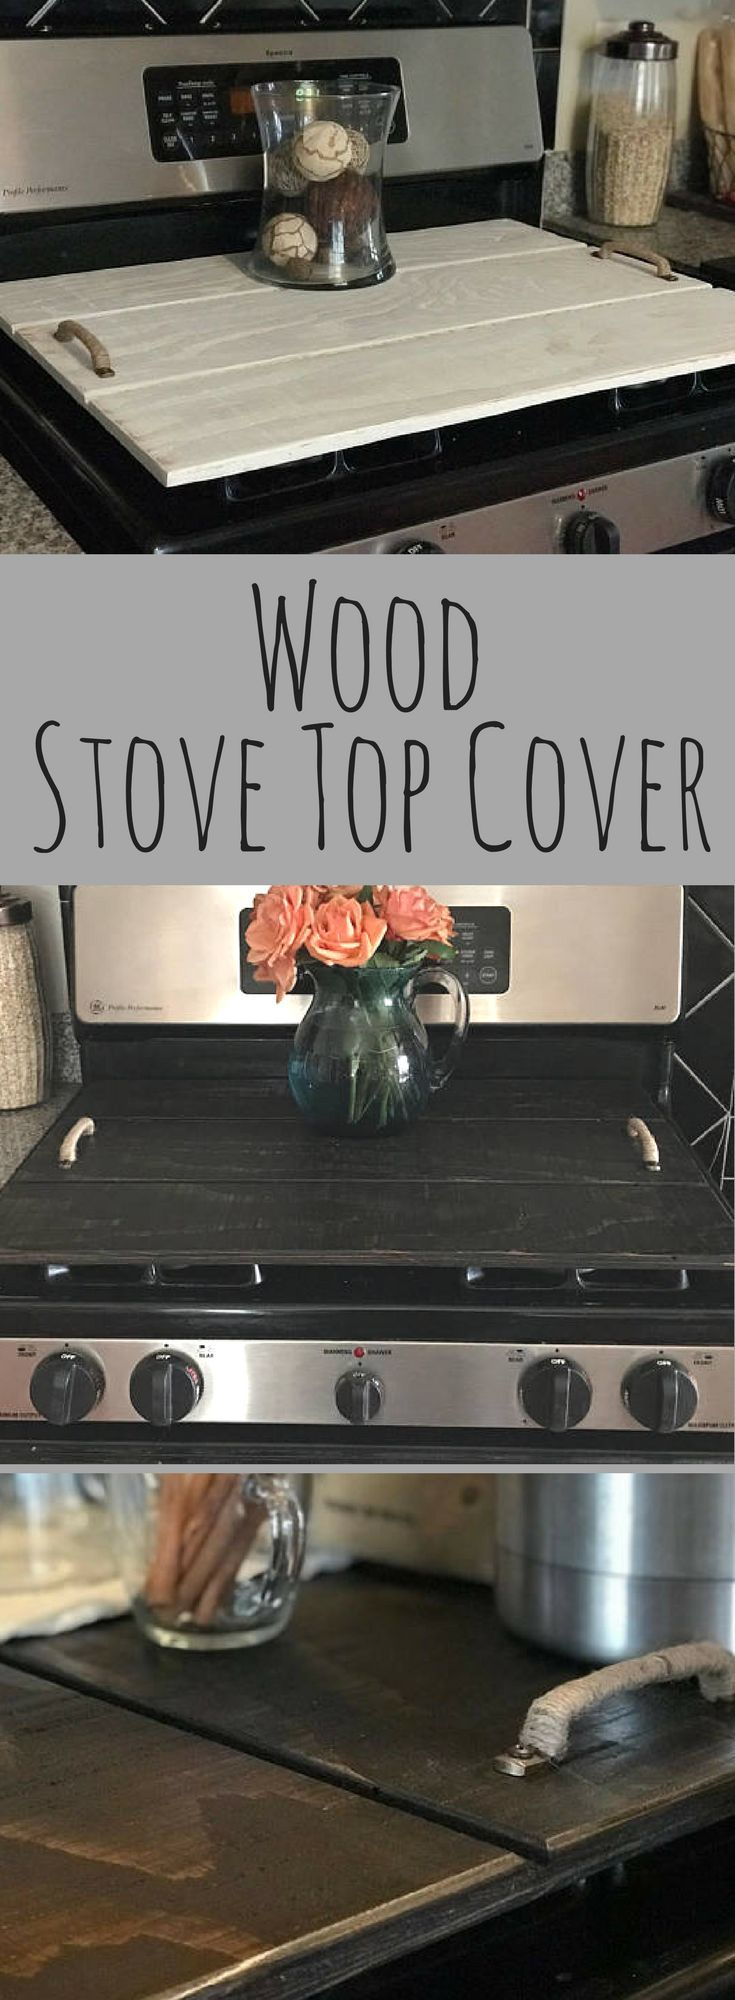 Wood stove cover kitchen decor wood stove topper oven wood tray